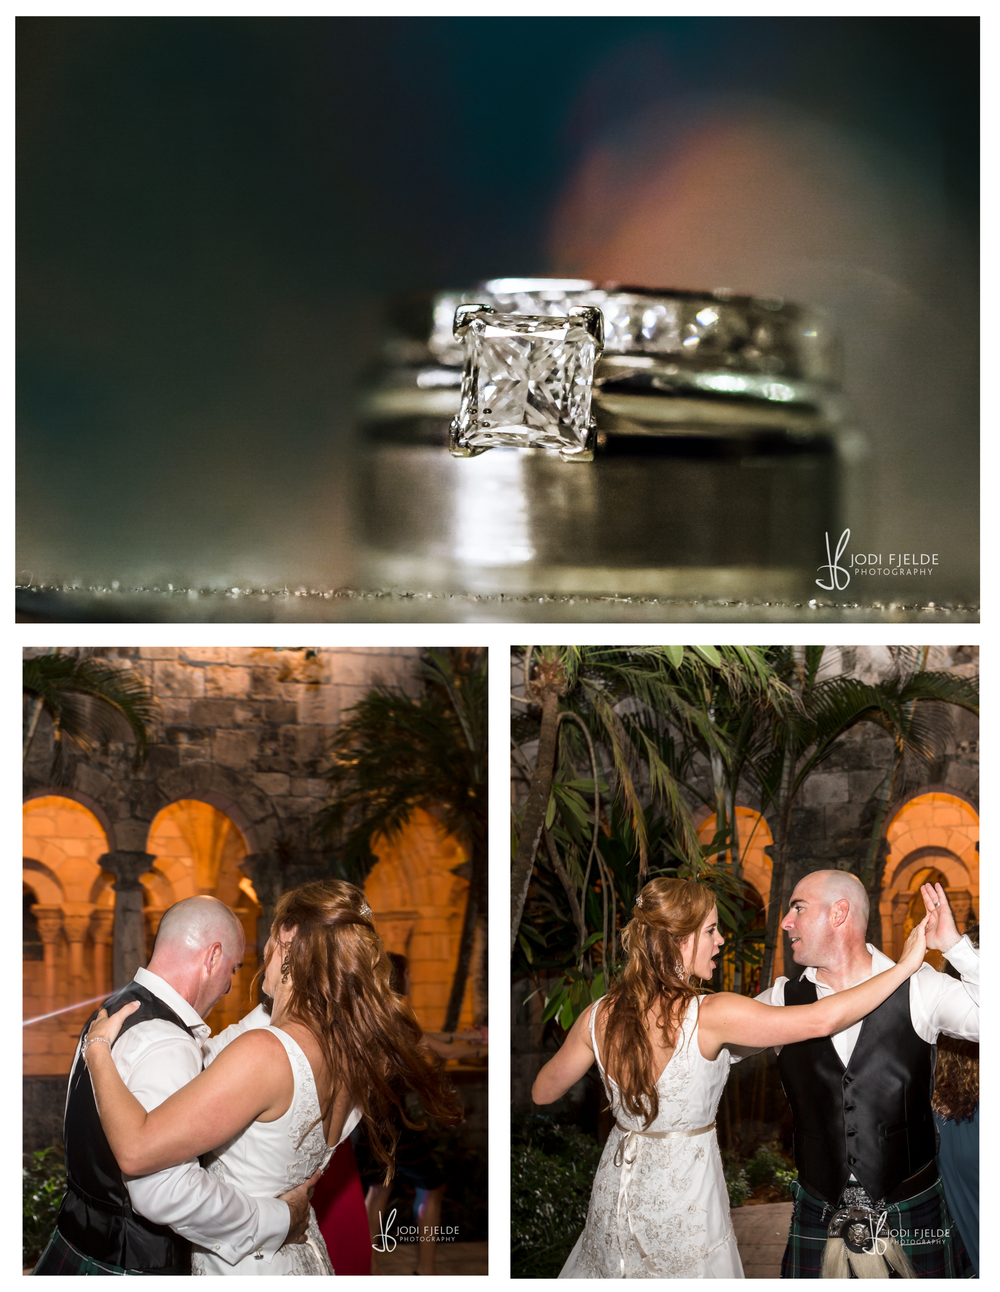 Ancient_Spanish_Monastery_Miami_Florida_wedding_Gio_Iggy_Jodi_Fjelde_Photography_24.jpg